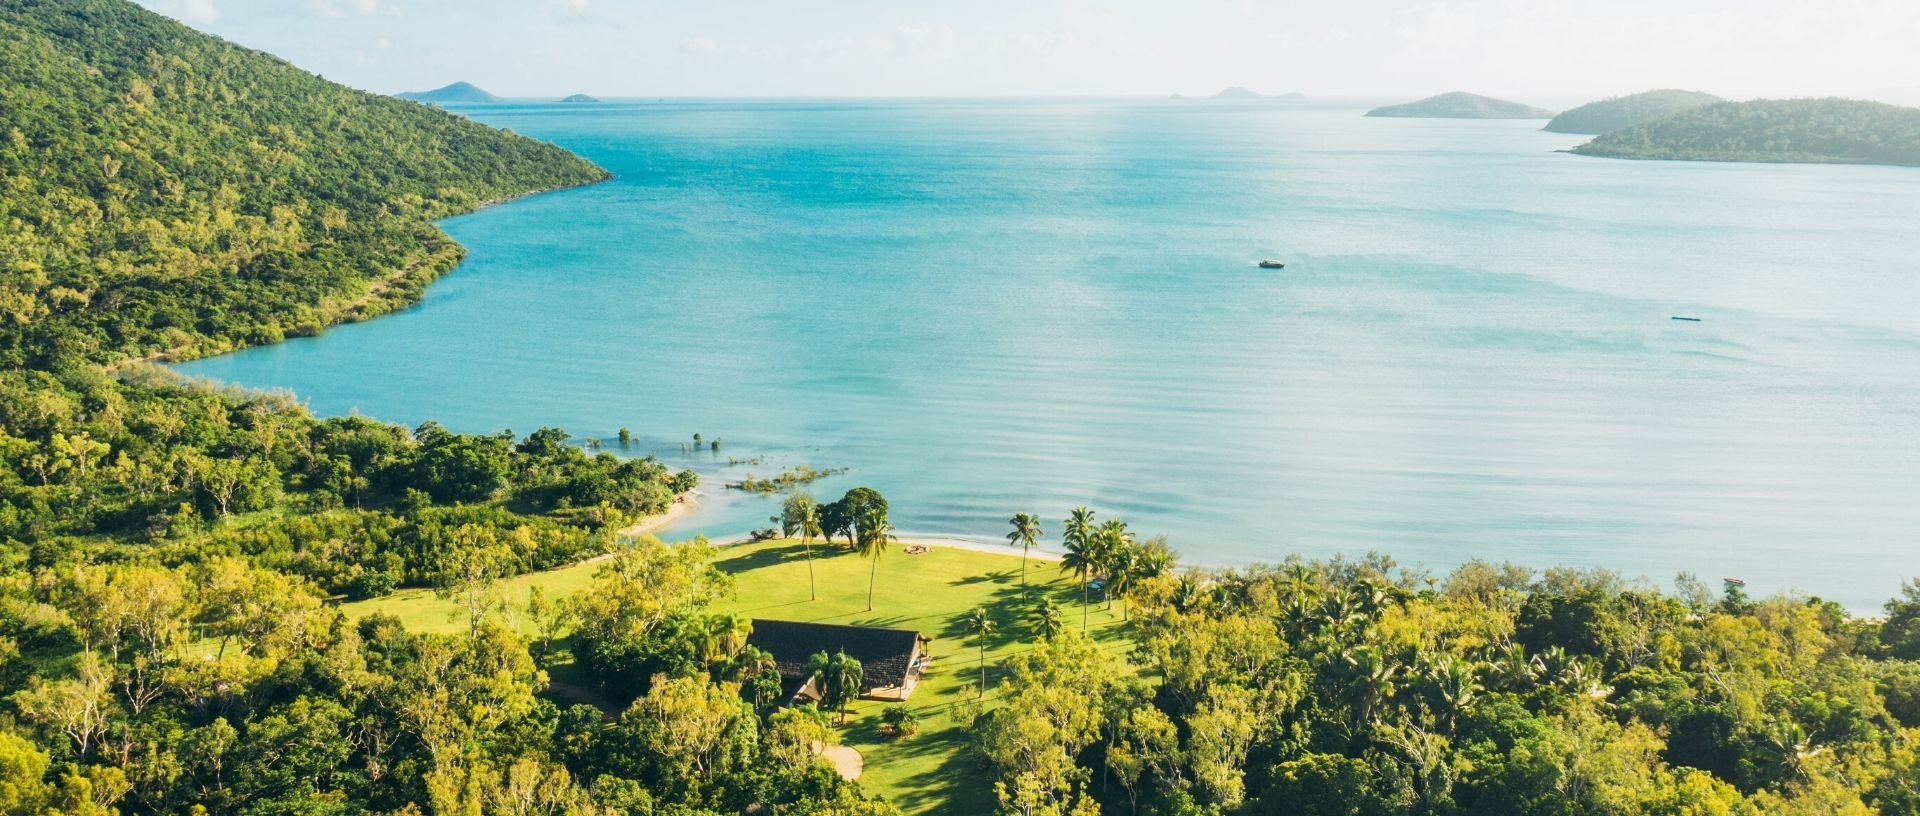 aerial image of Paradise Cove Resort in the Whitsundays looking out towards Coral Sea